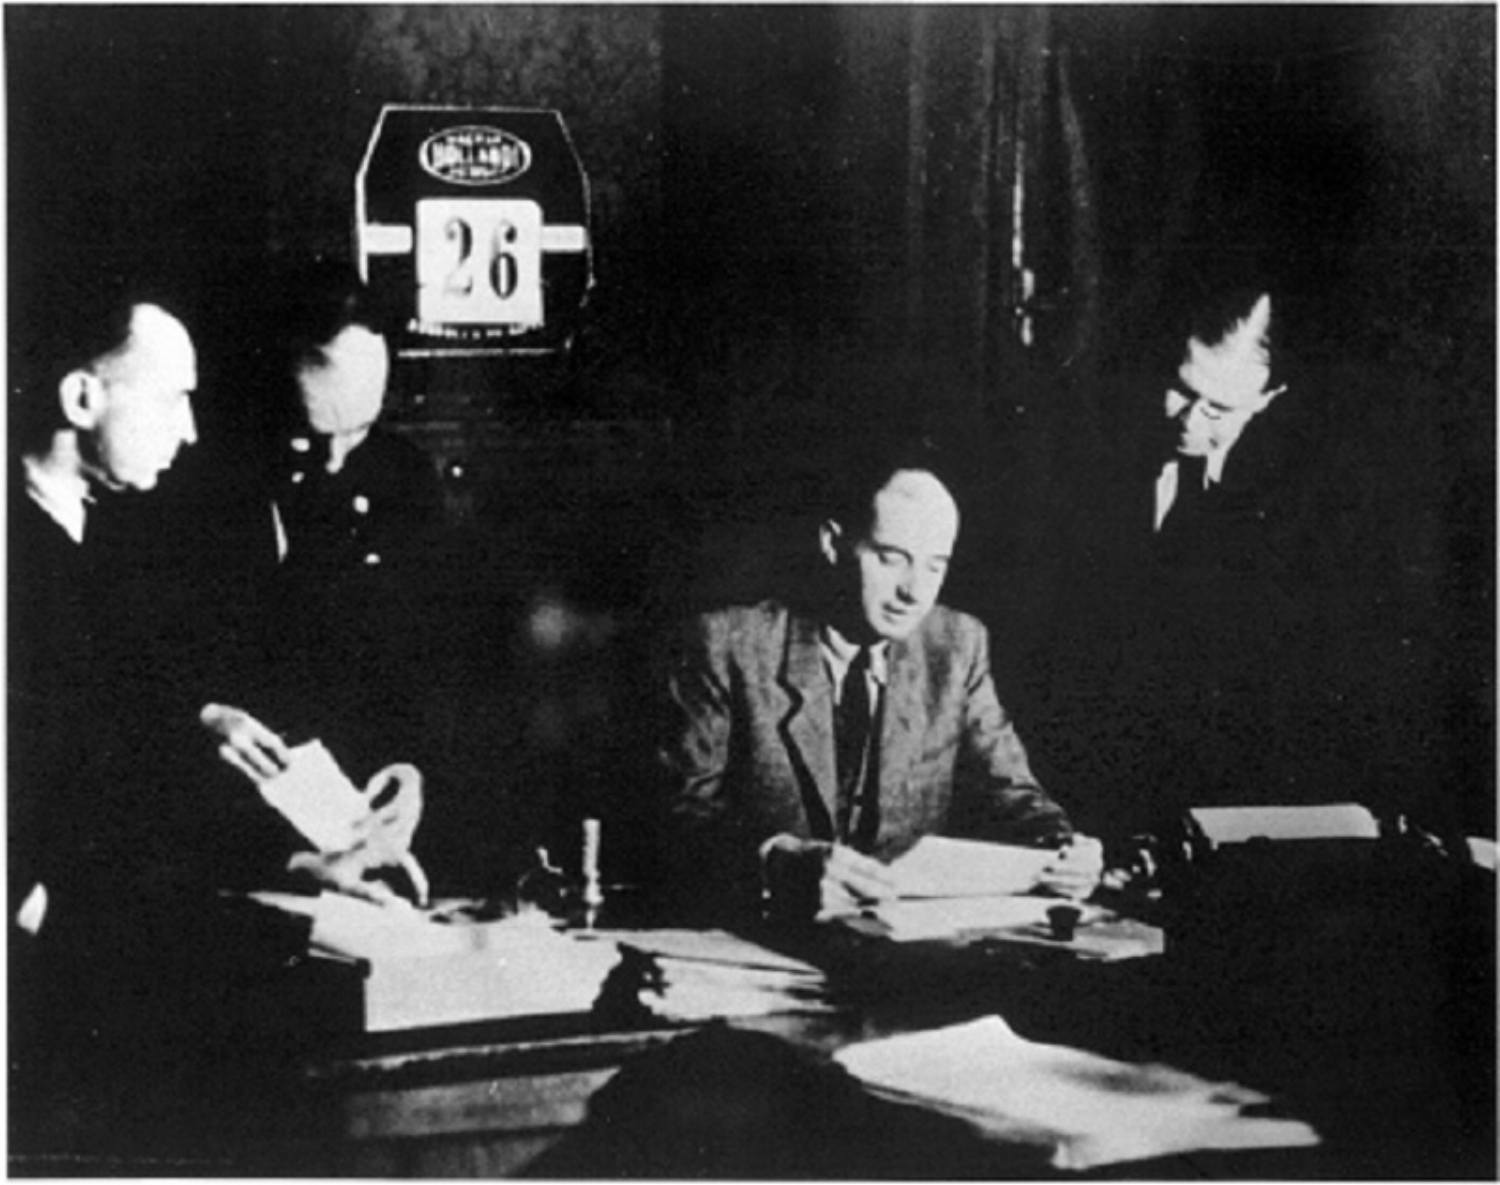 Raoul Wallenberg, Swedish Special Envoy in Budapest, 1944-45, with his Jewish staff members